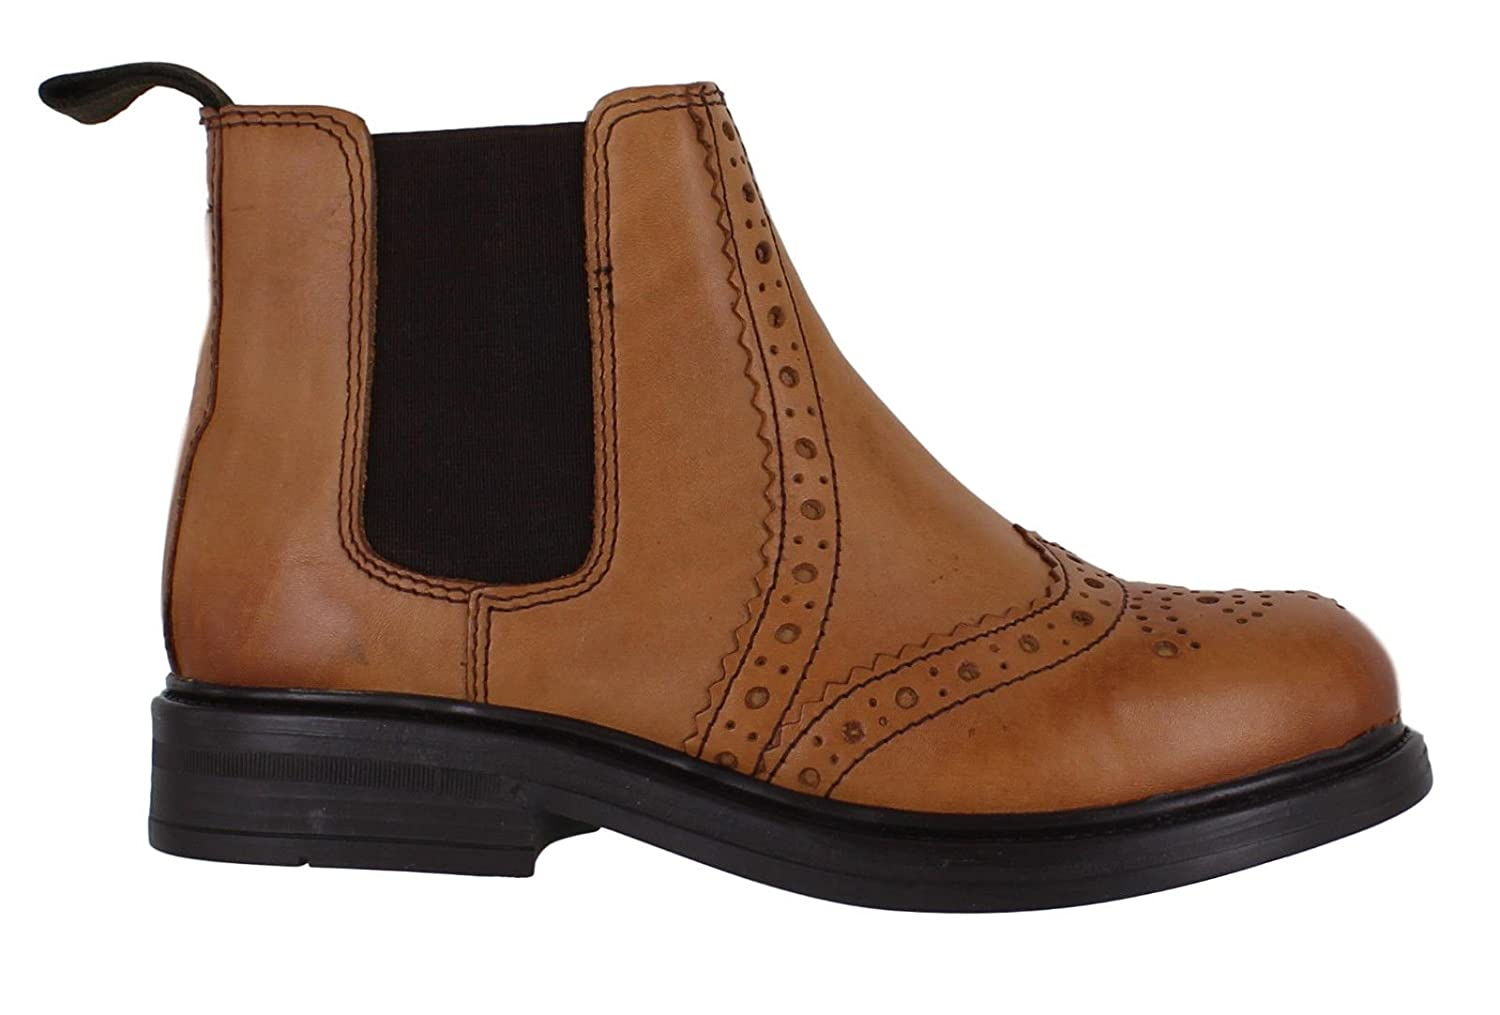 ea8d1041b688b Catesby Boys Junior Infants Leather Dealer Pull On Brogue Chelsea Boots   Amazon.co.uk  Shoes   Bags